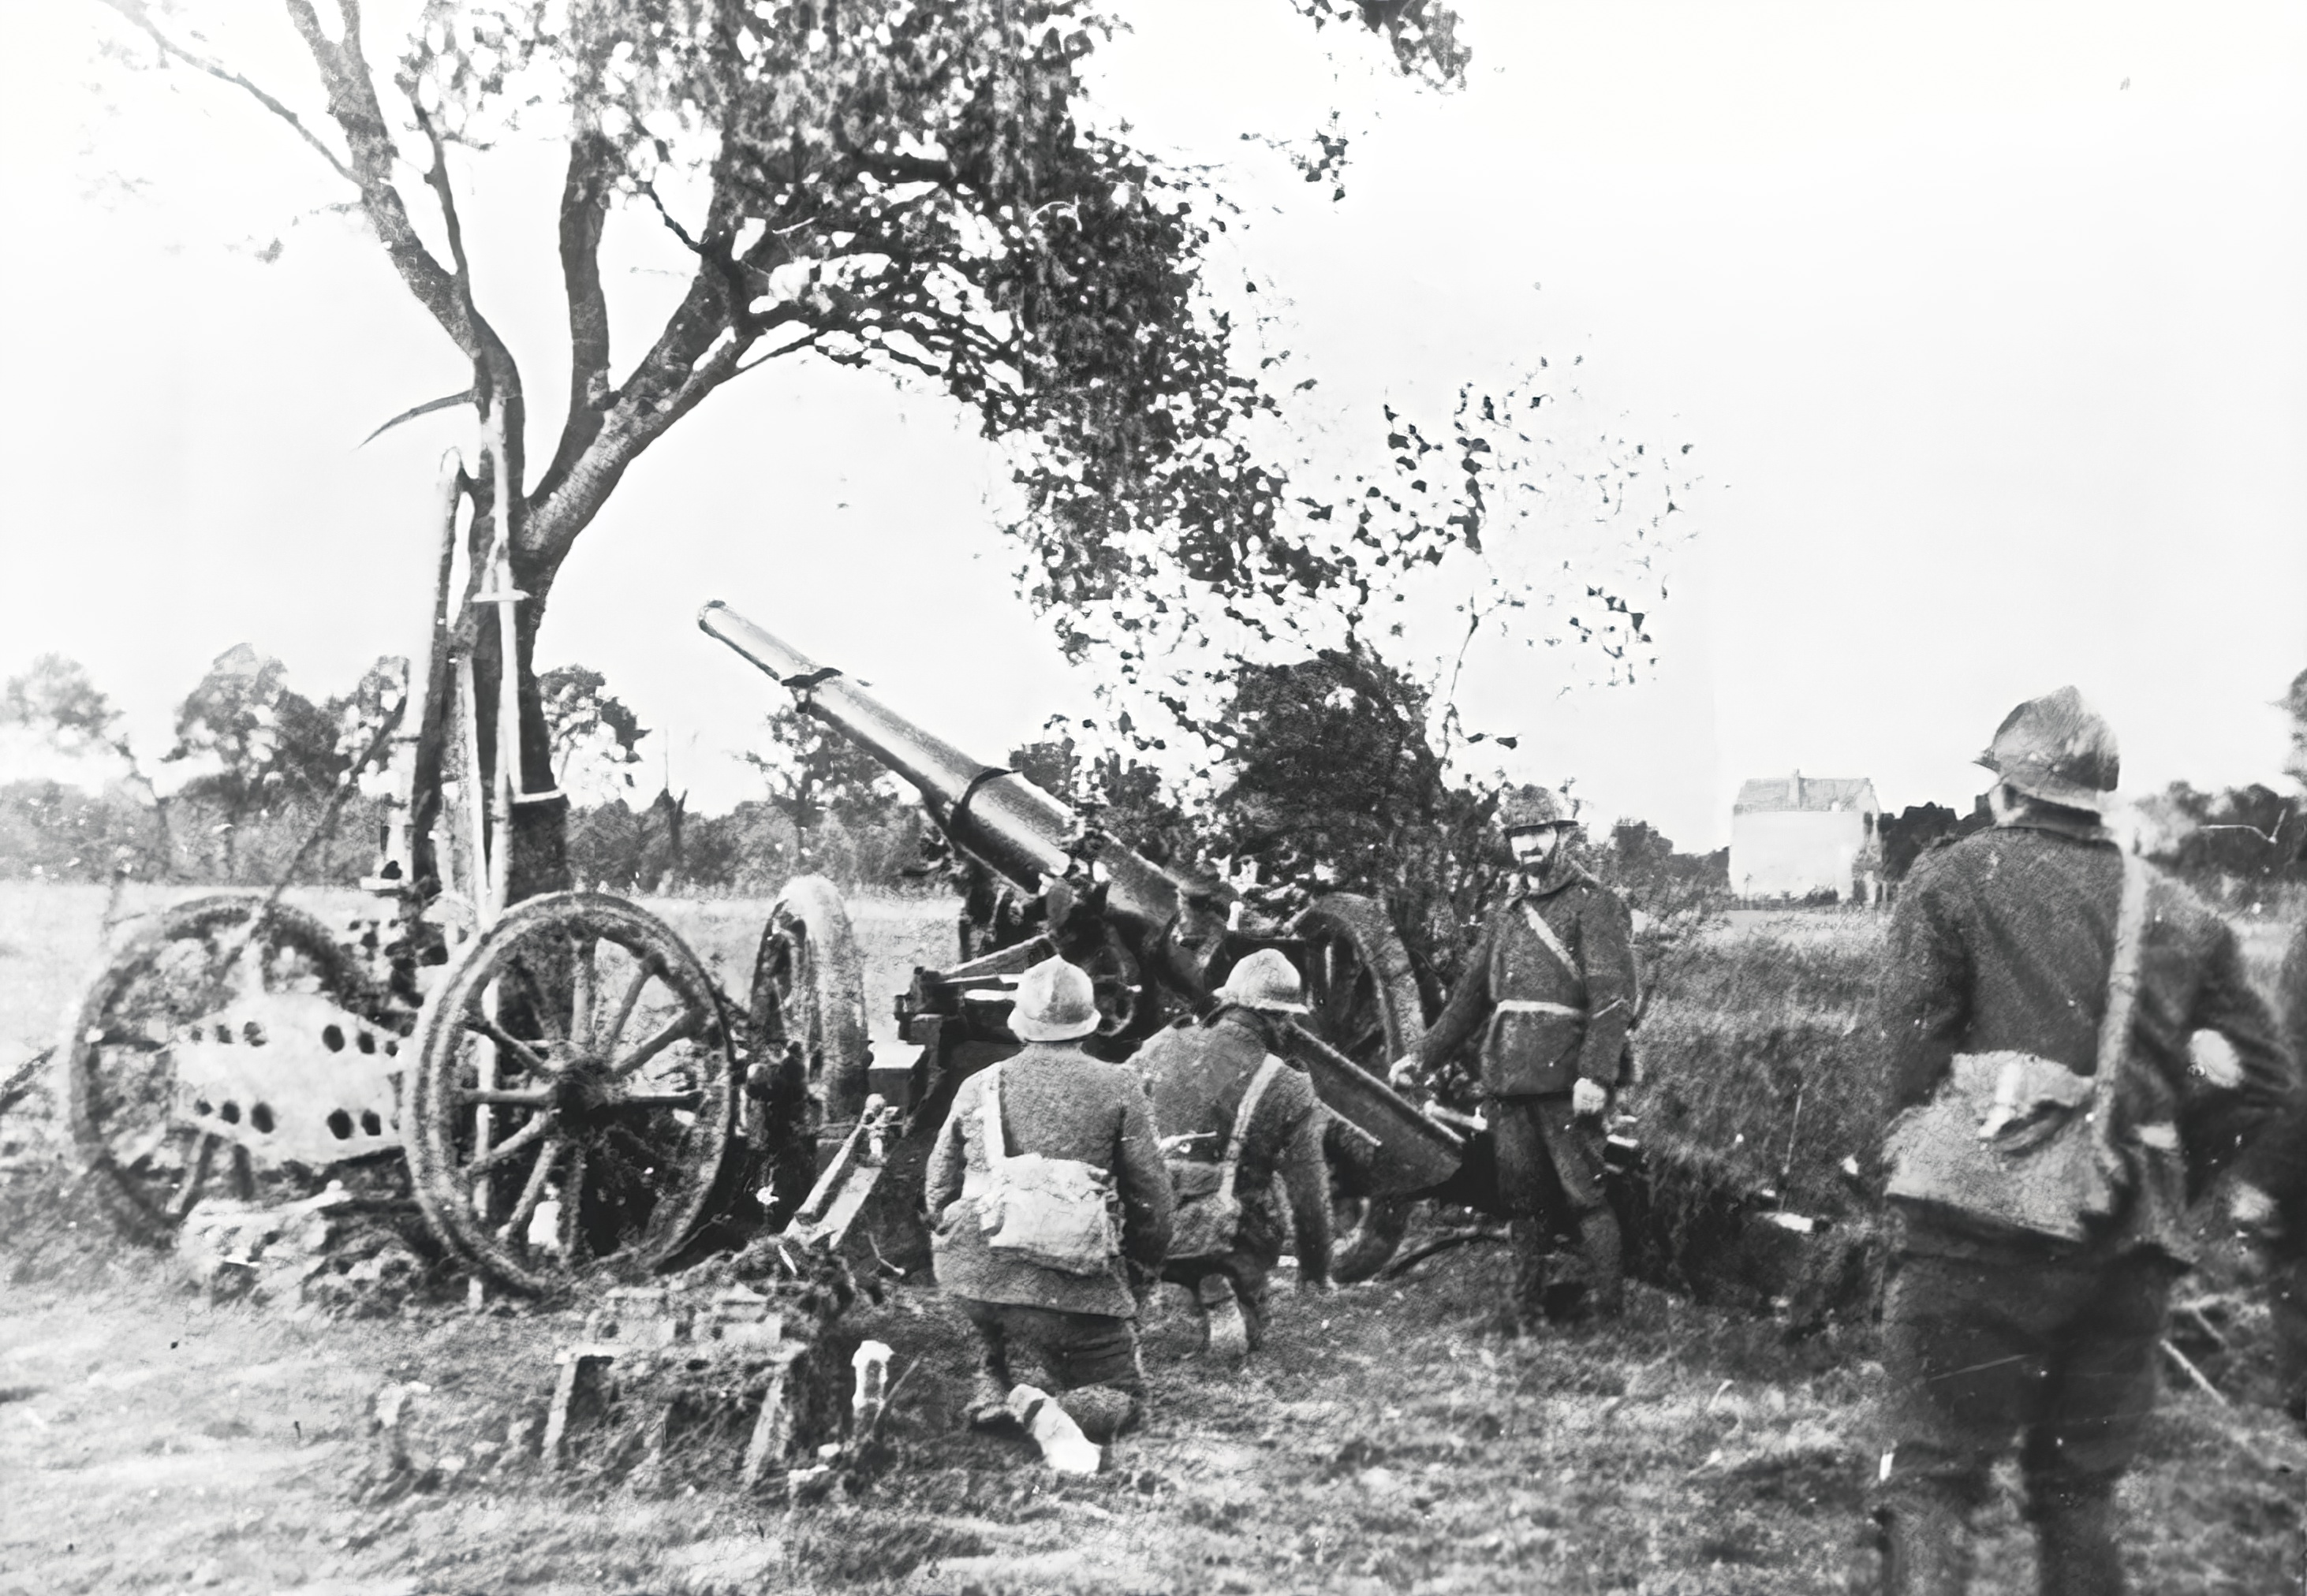 French artillery being deployed during manoeuvres during the Phoney War period 13th Oct 1939 NIOD